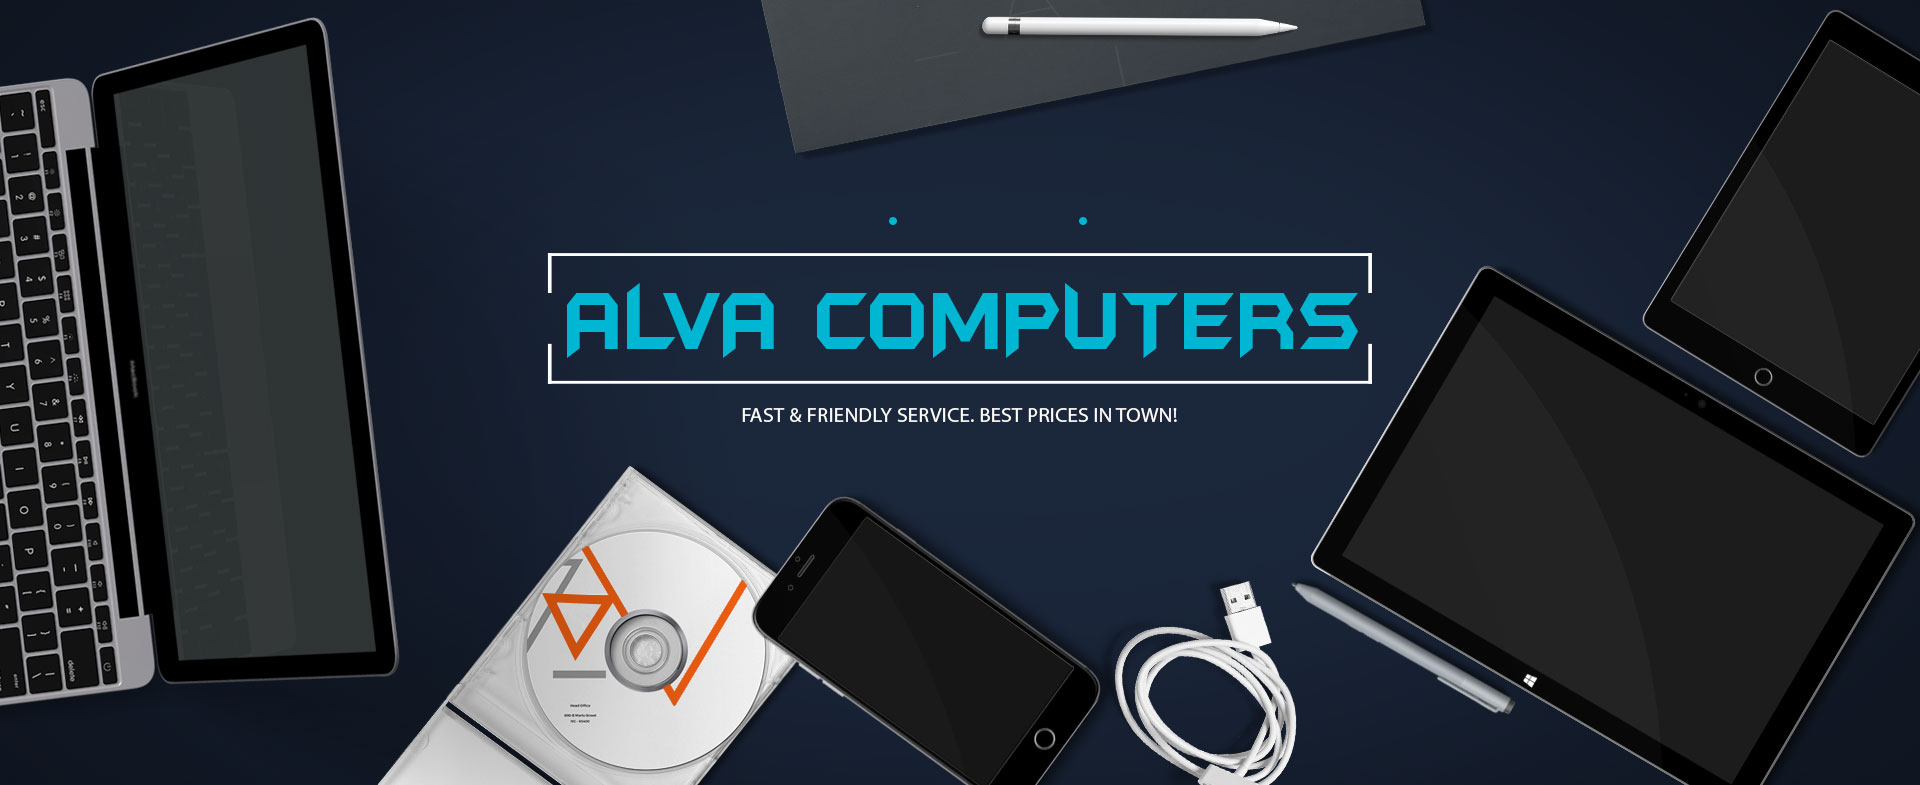 Alva Computers Slider